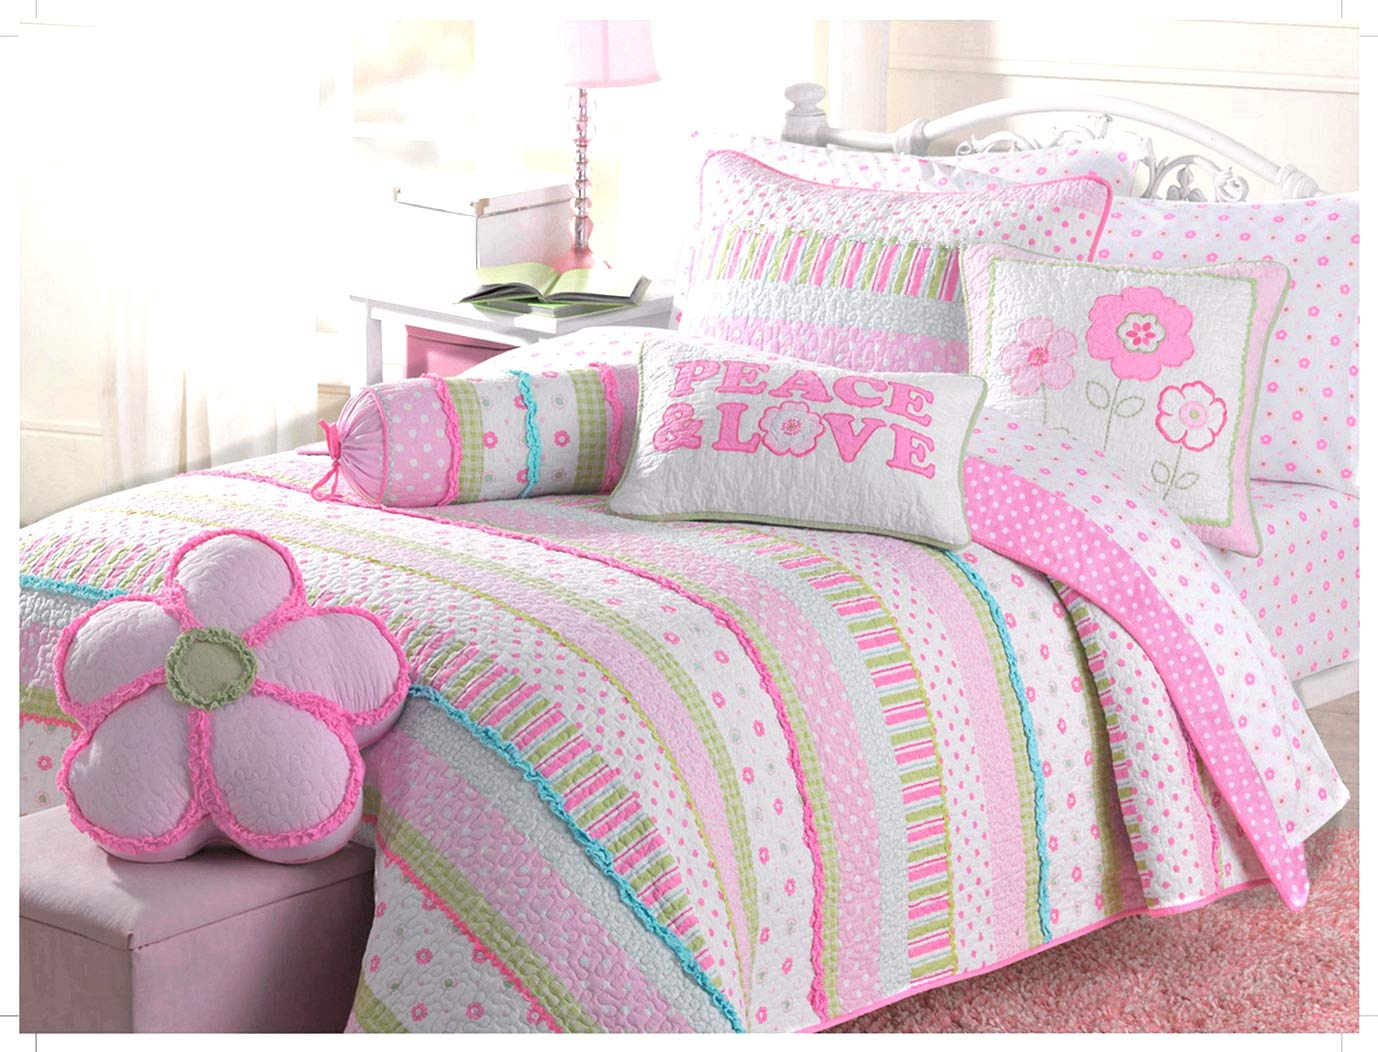 Cozy Line Home Fashions Pink Greta Pastel Polka Dot Green Blue Stripe Flower Pattern Printed Cotton Bedding Quilt Set, Reversible Coverlet, Bedspread for Kids Girls (Pastel Set, Full/Queen -3 Piece)